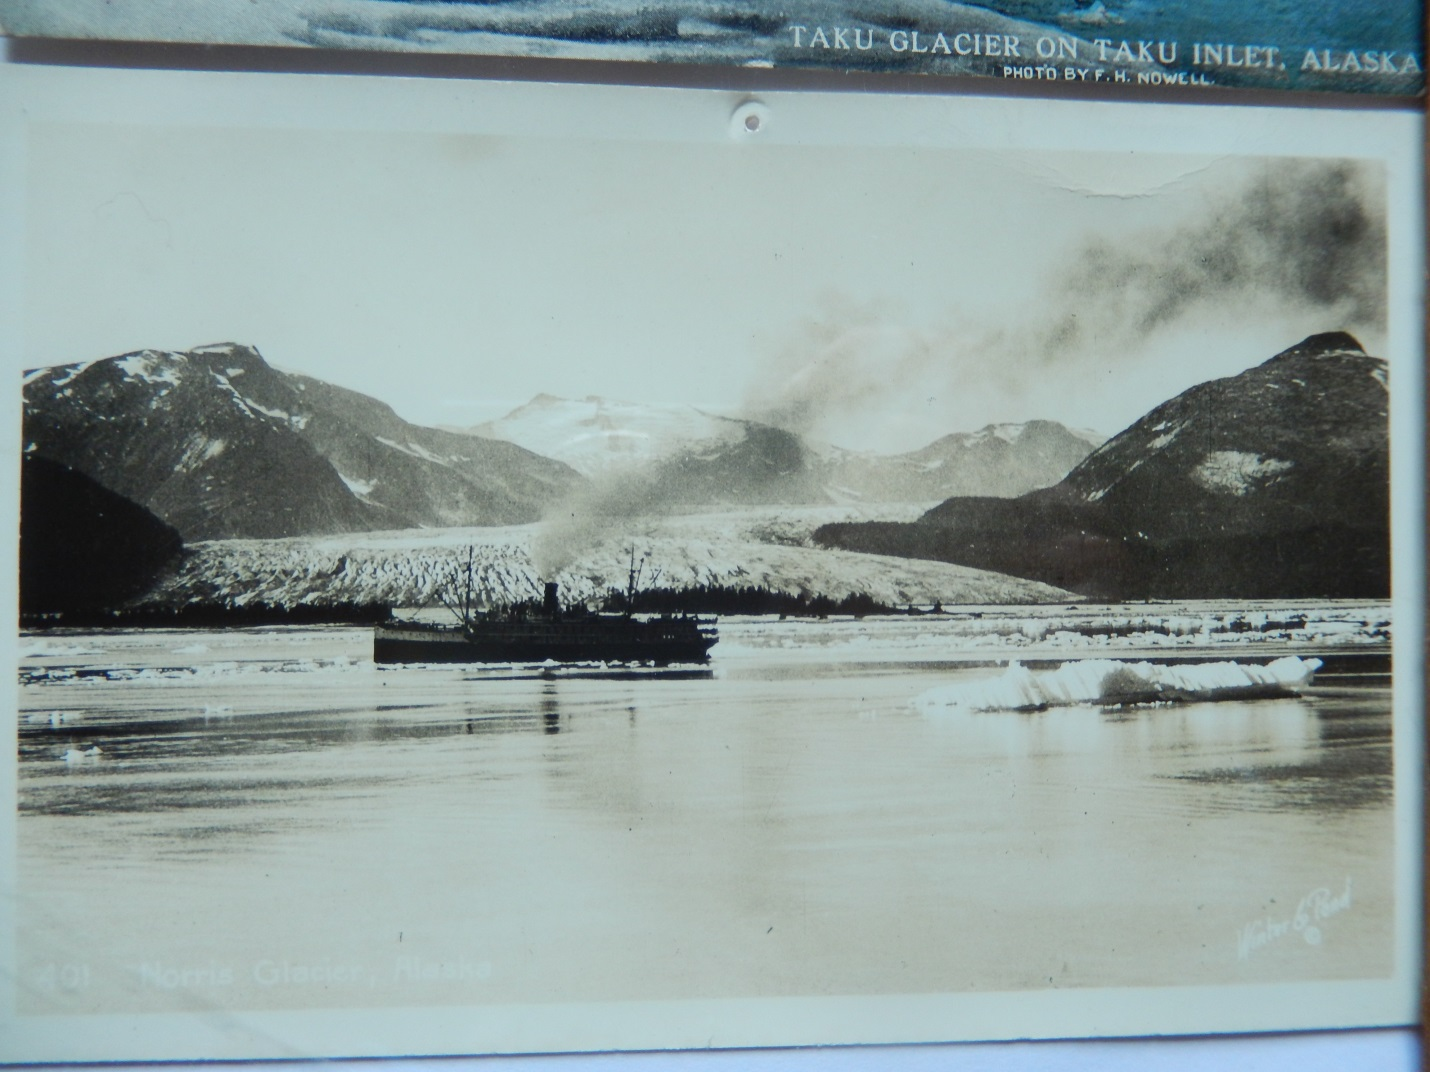 A steamship floats in front of the Taku terminus during an earlier advancement of the glacier.